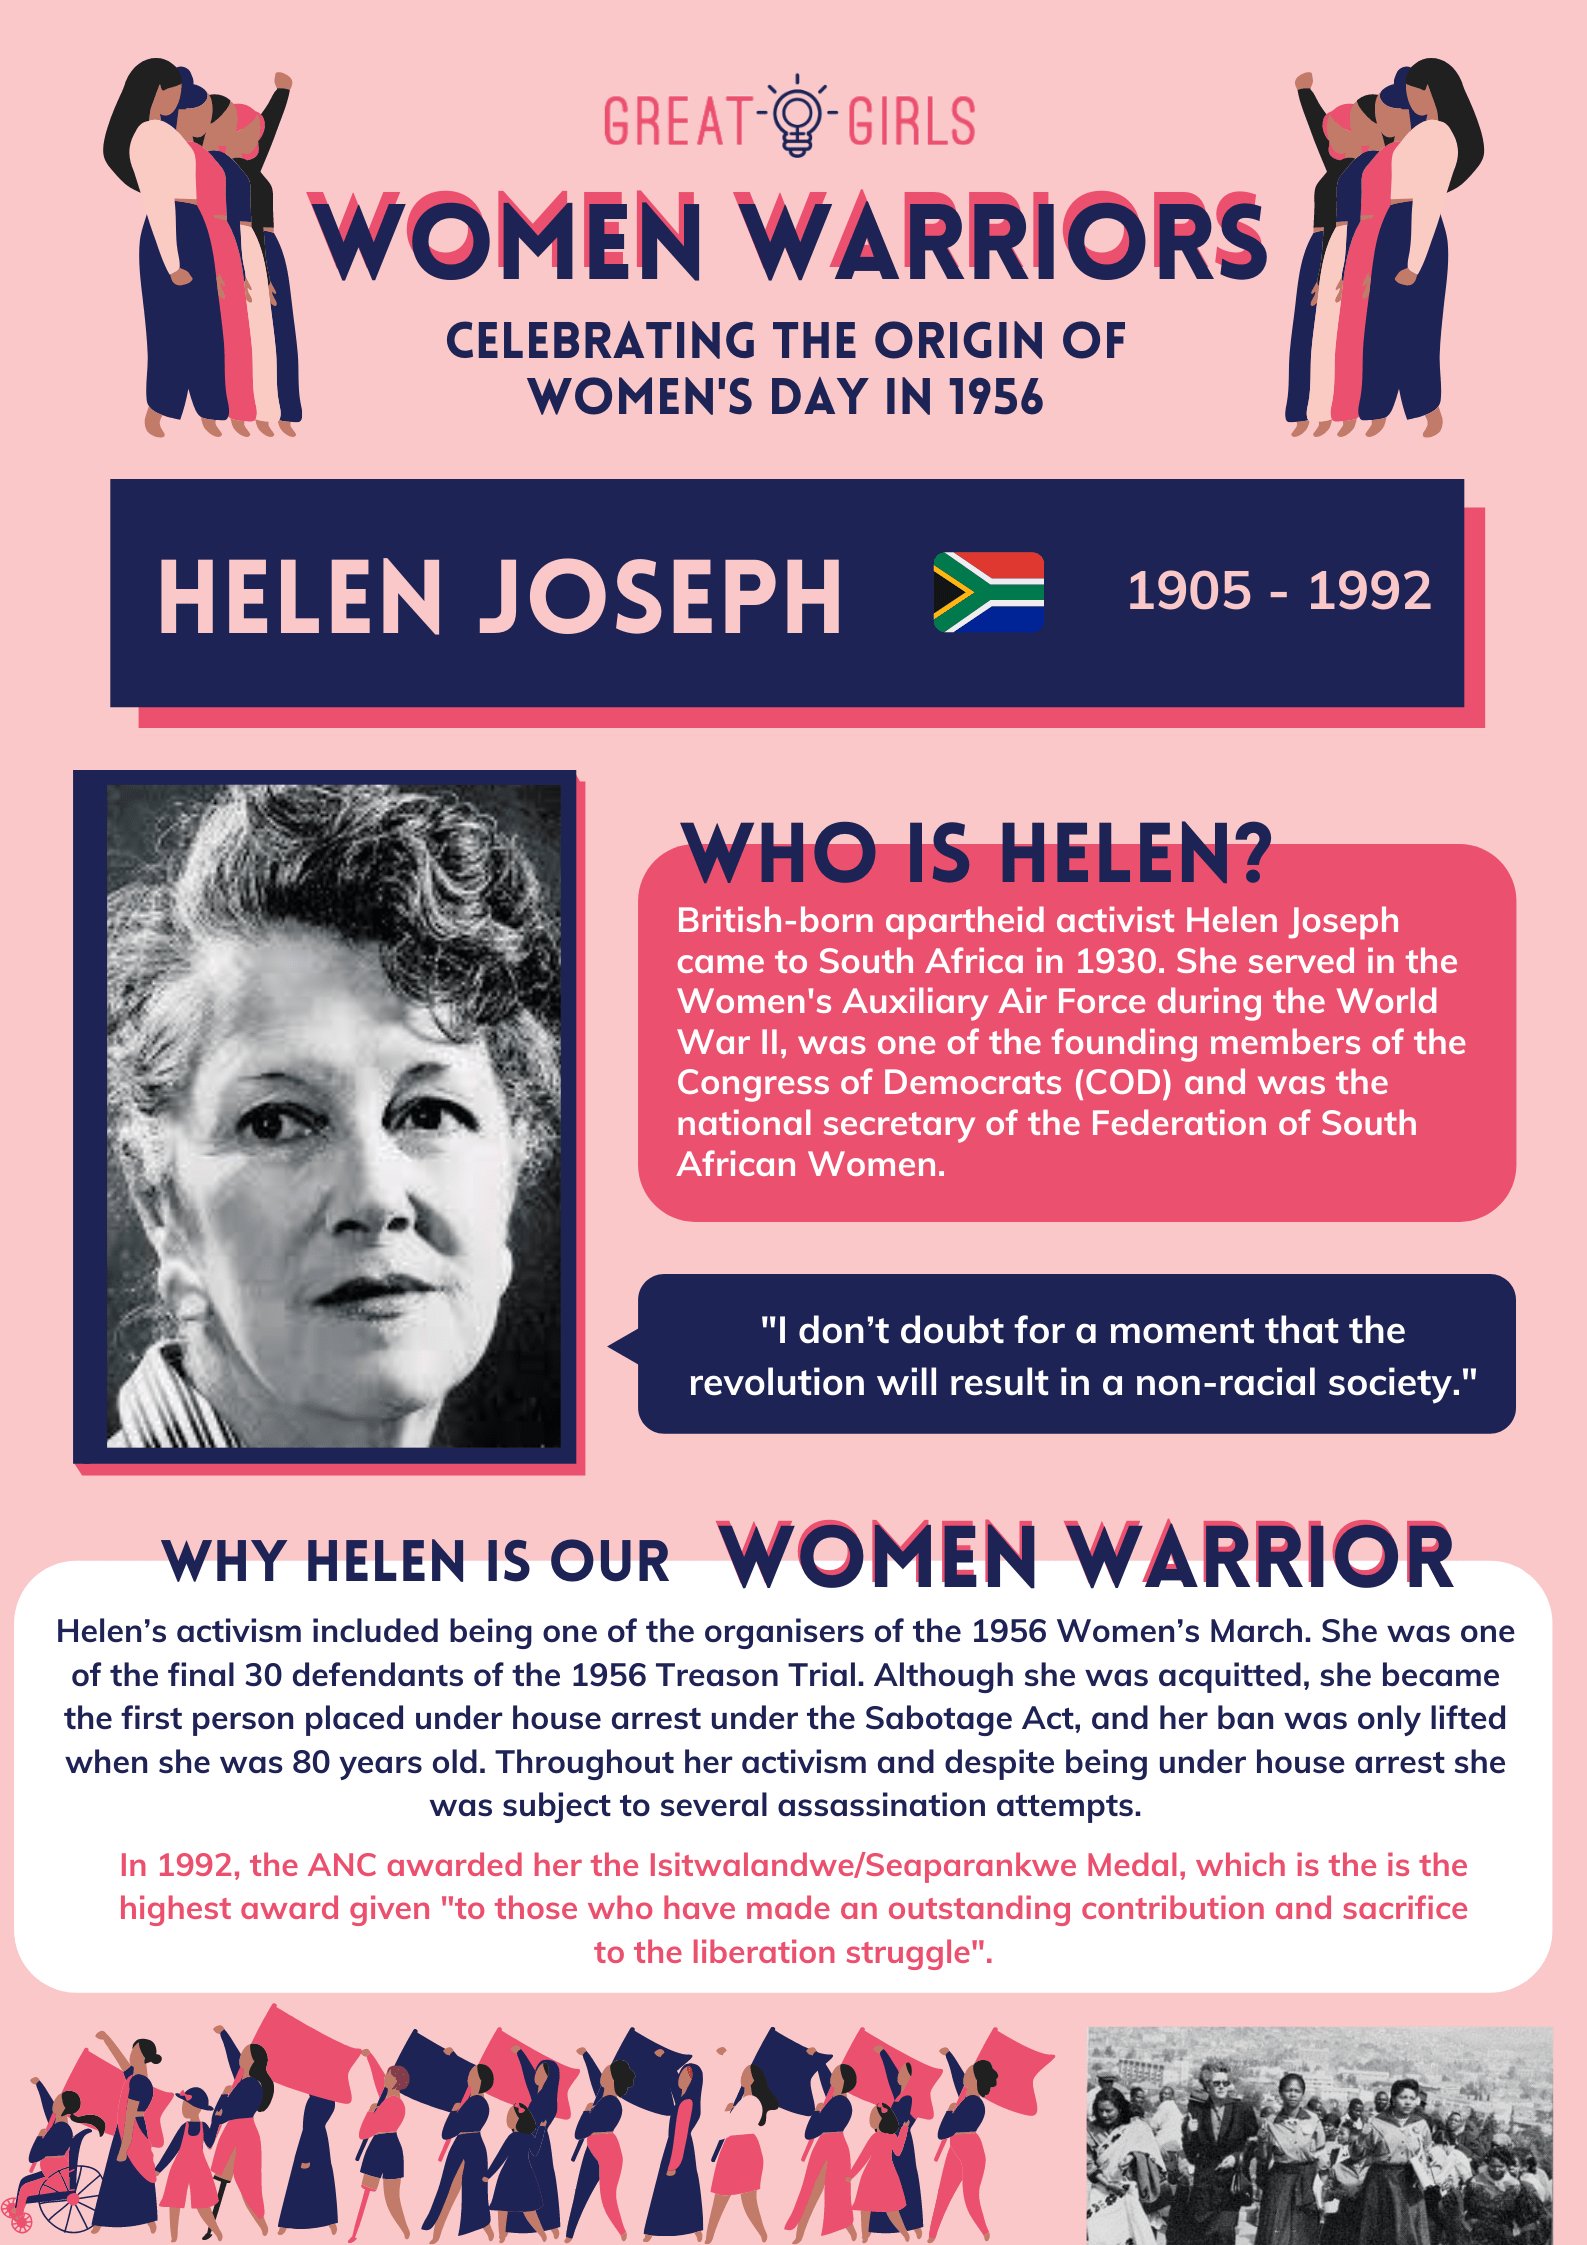 Women Warrior - Helen Joseph